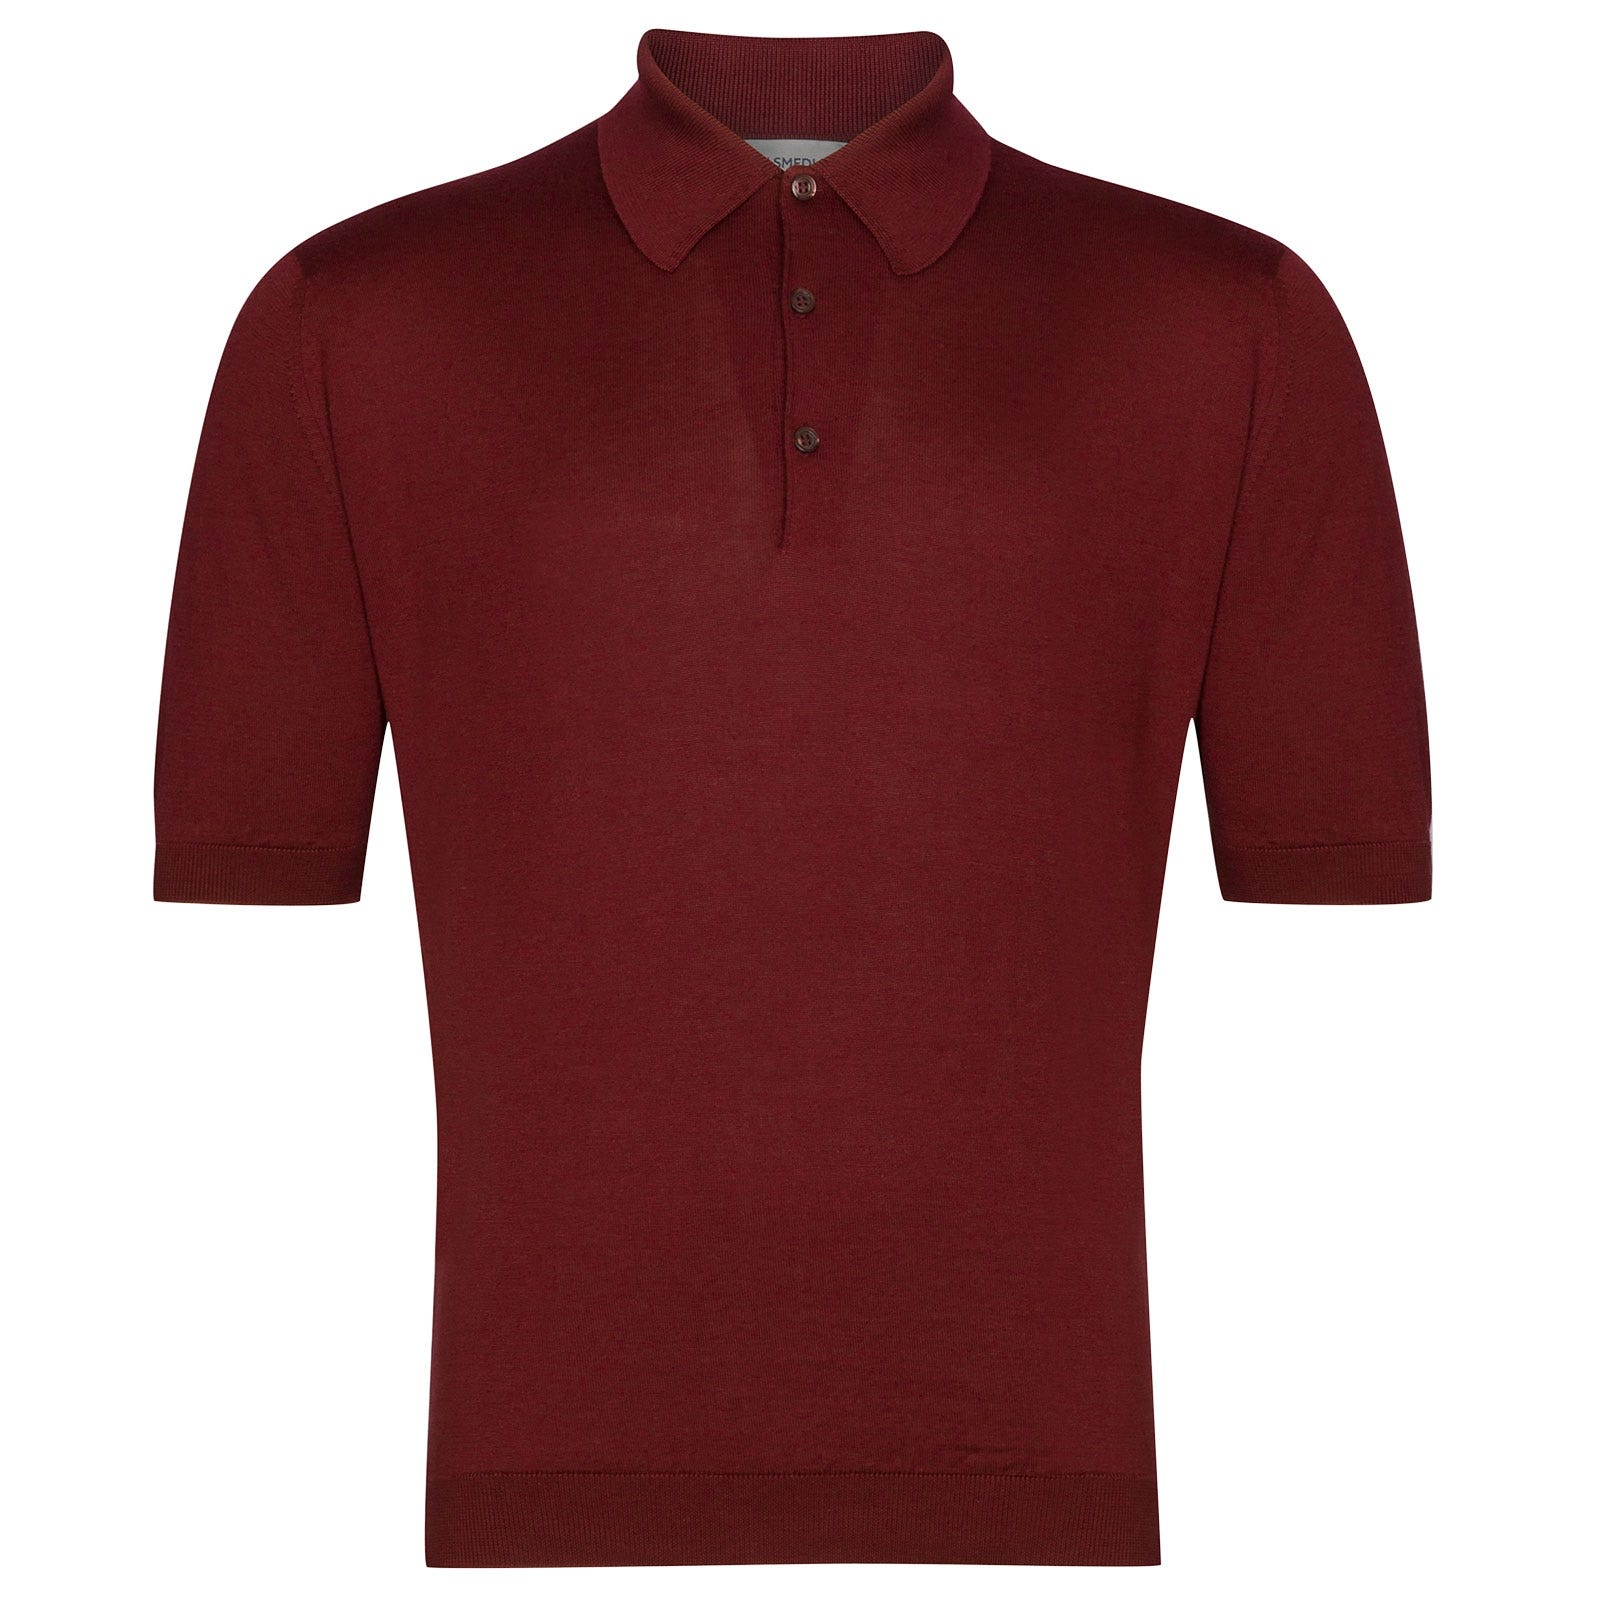 John Smedley Isis Sea Island Cotton Shirt in Burgundy Grain-XS